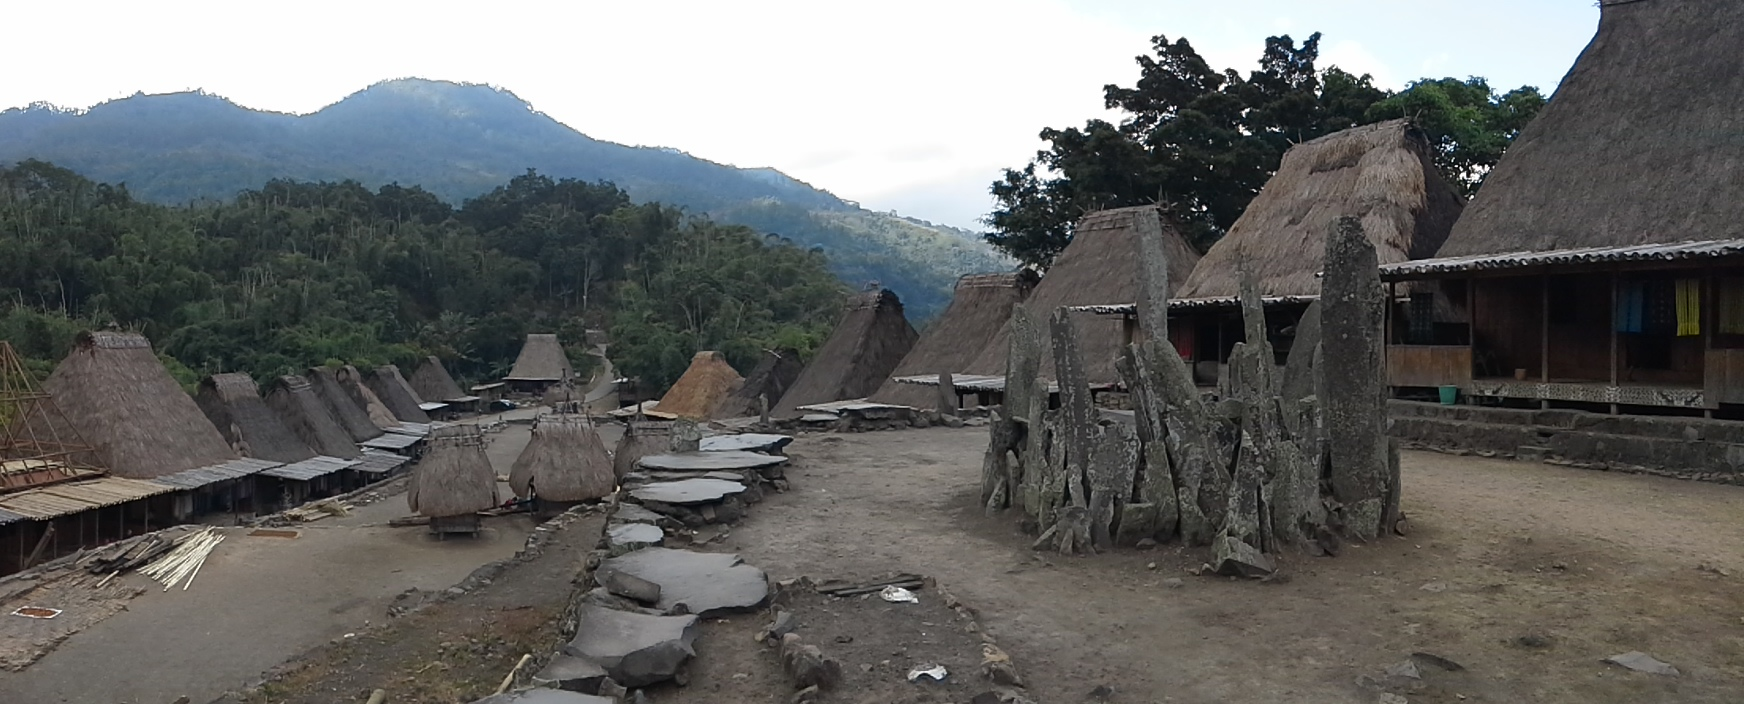 Bena Traditional Village, Bajawa - Flores